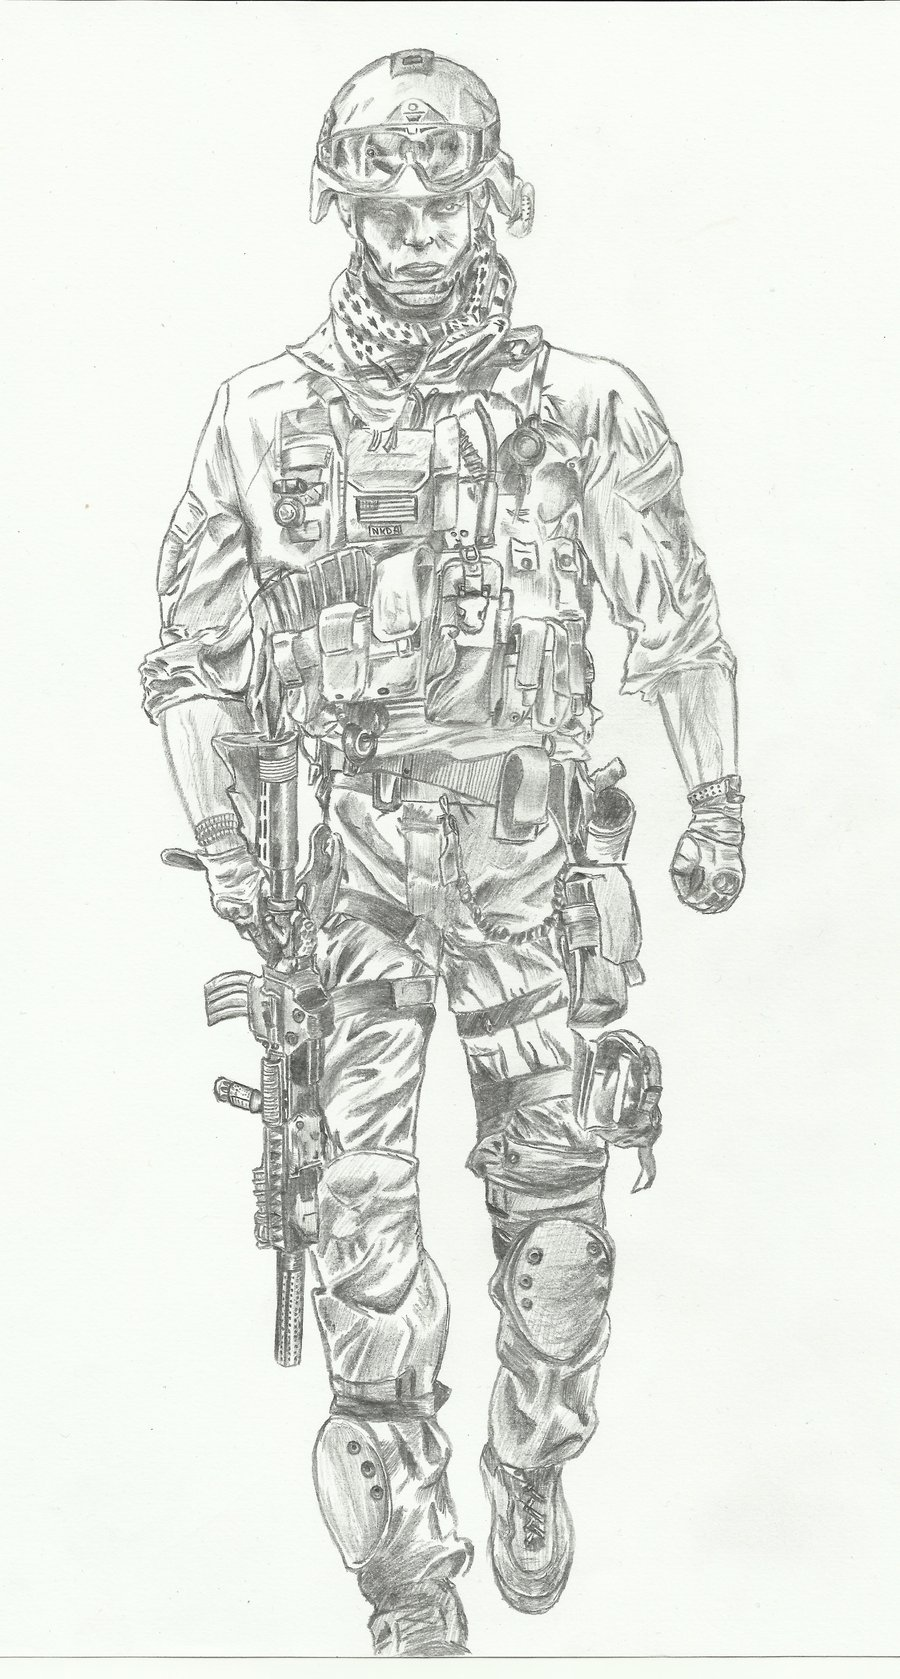 Drawn soldiers #13